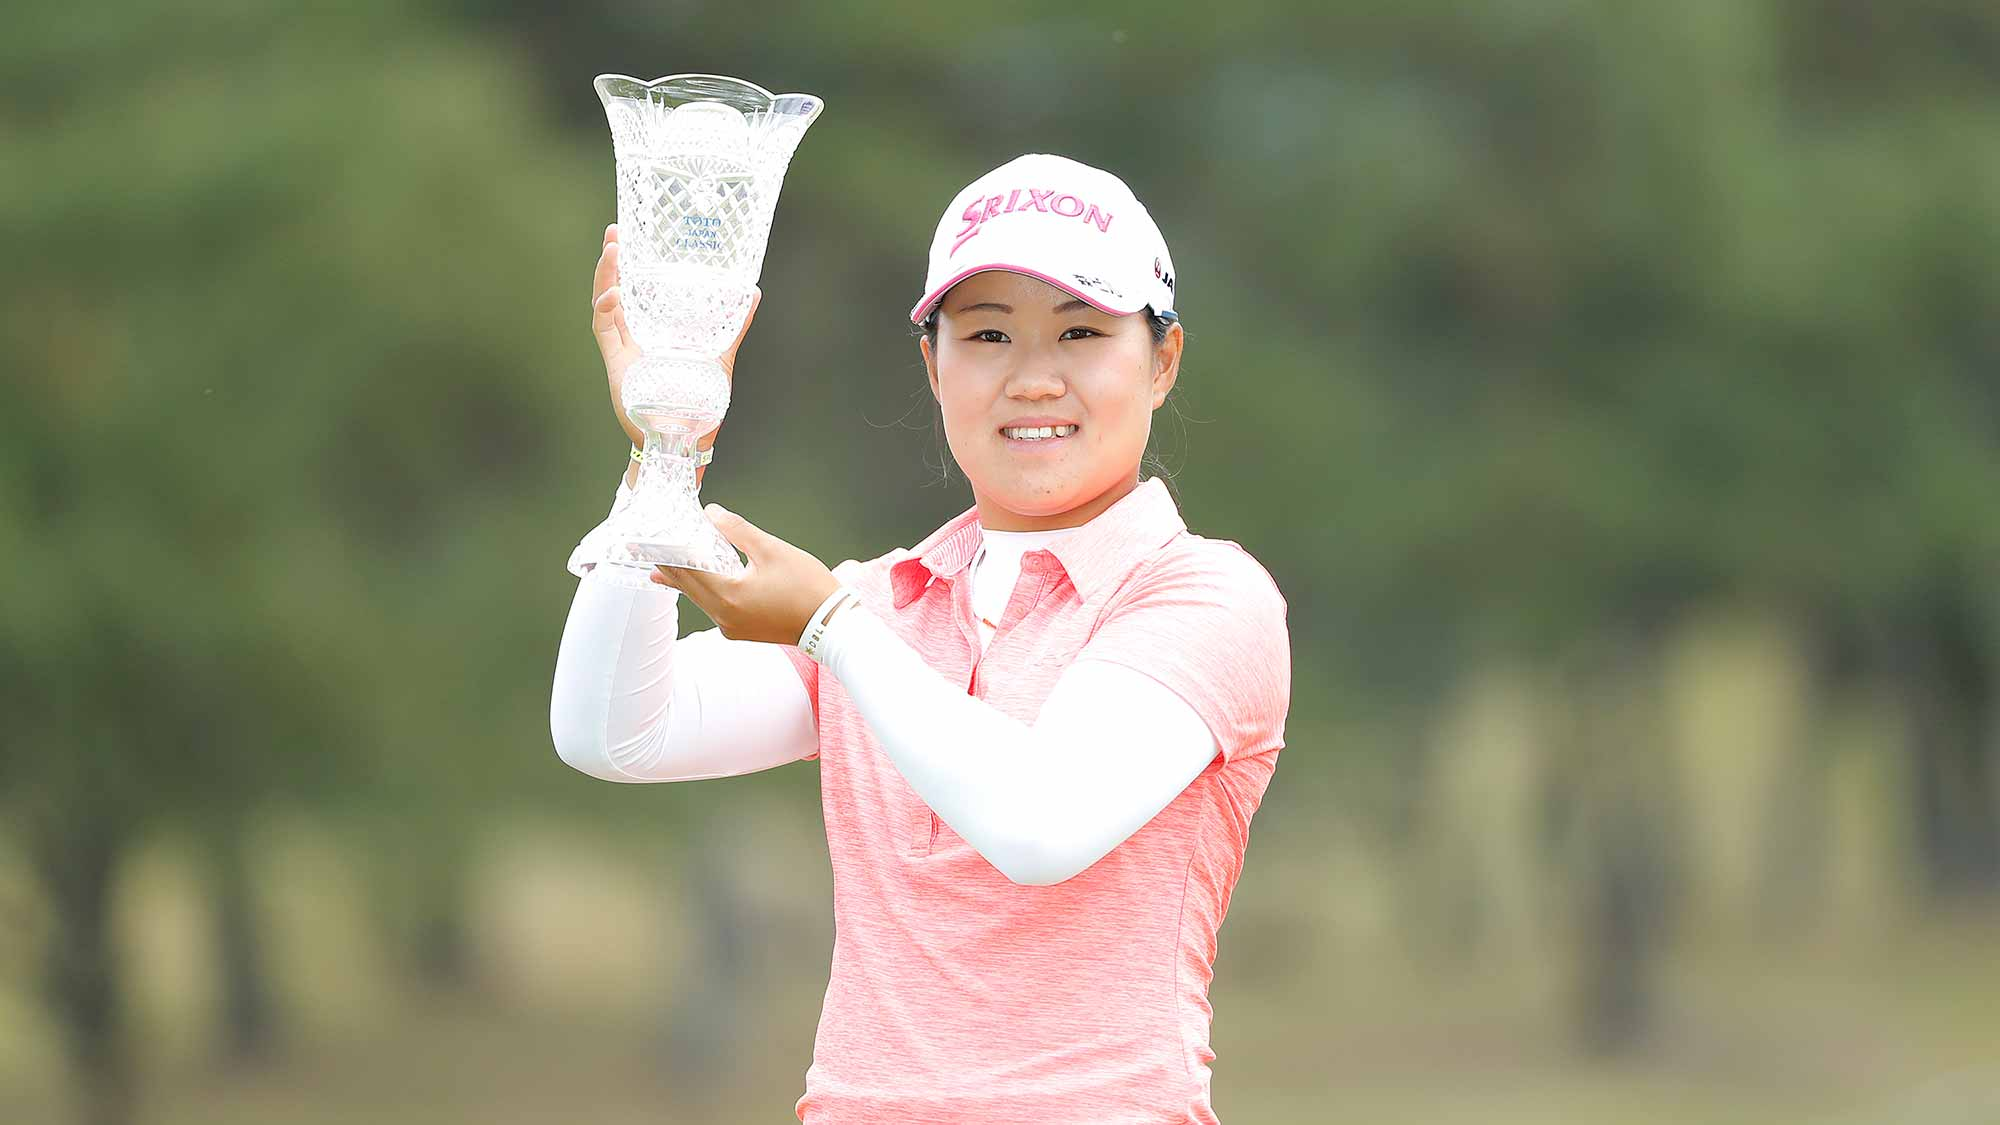 Lee takes 3-stroke lead after 2 rounds at Japan Classic